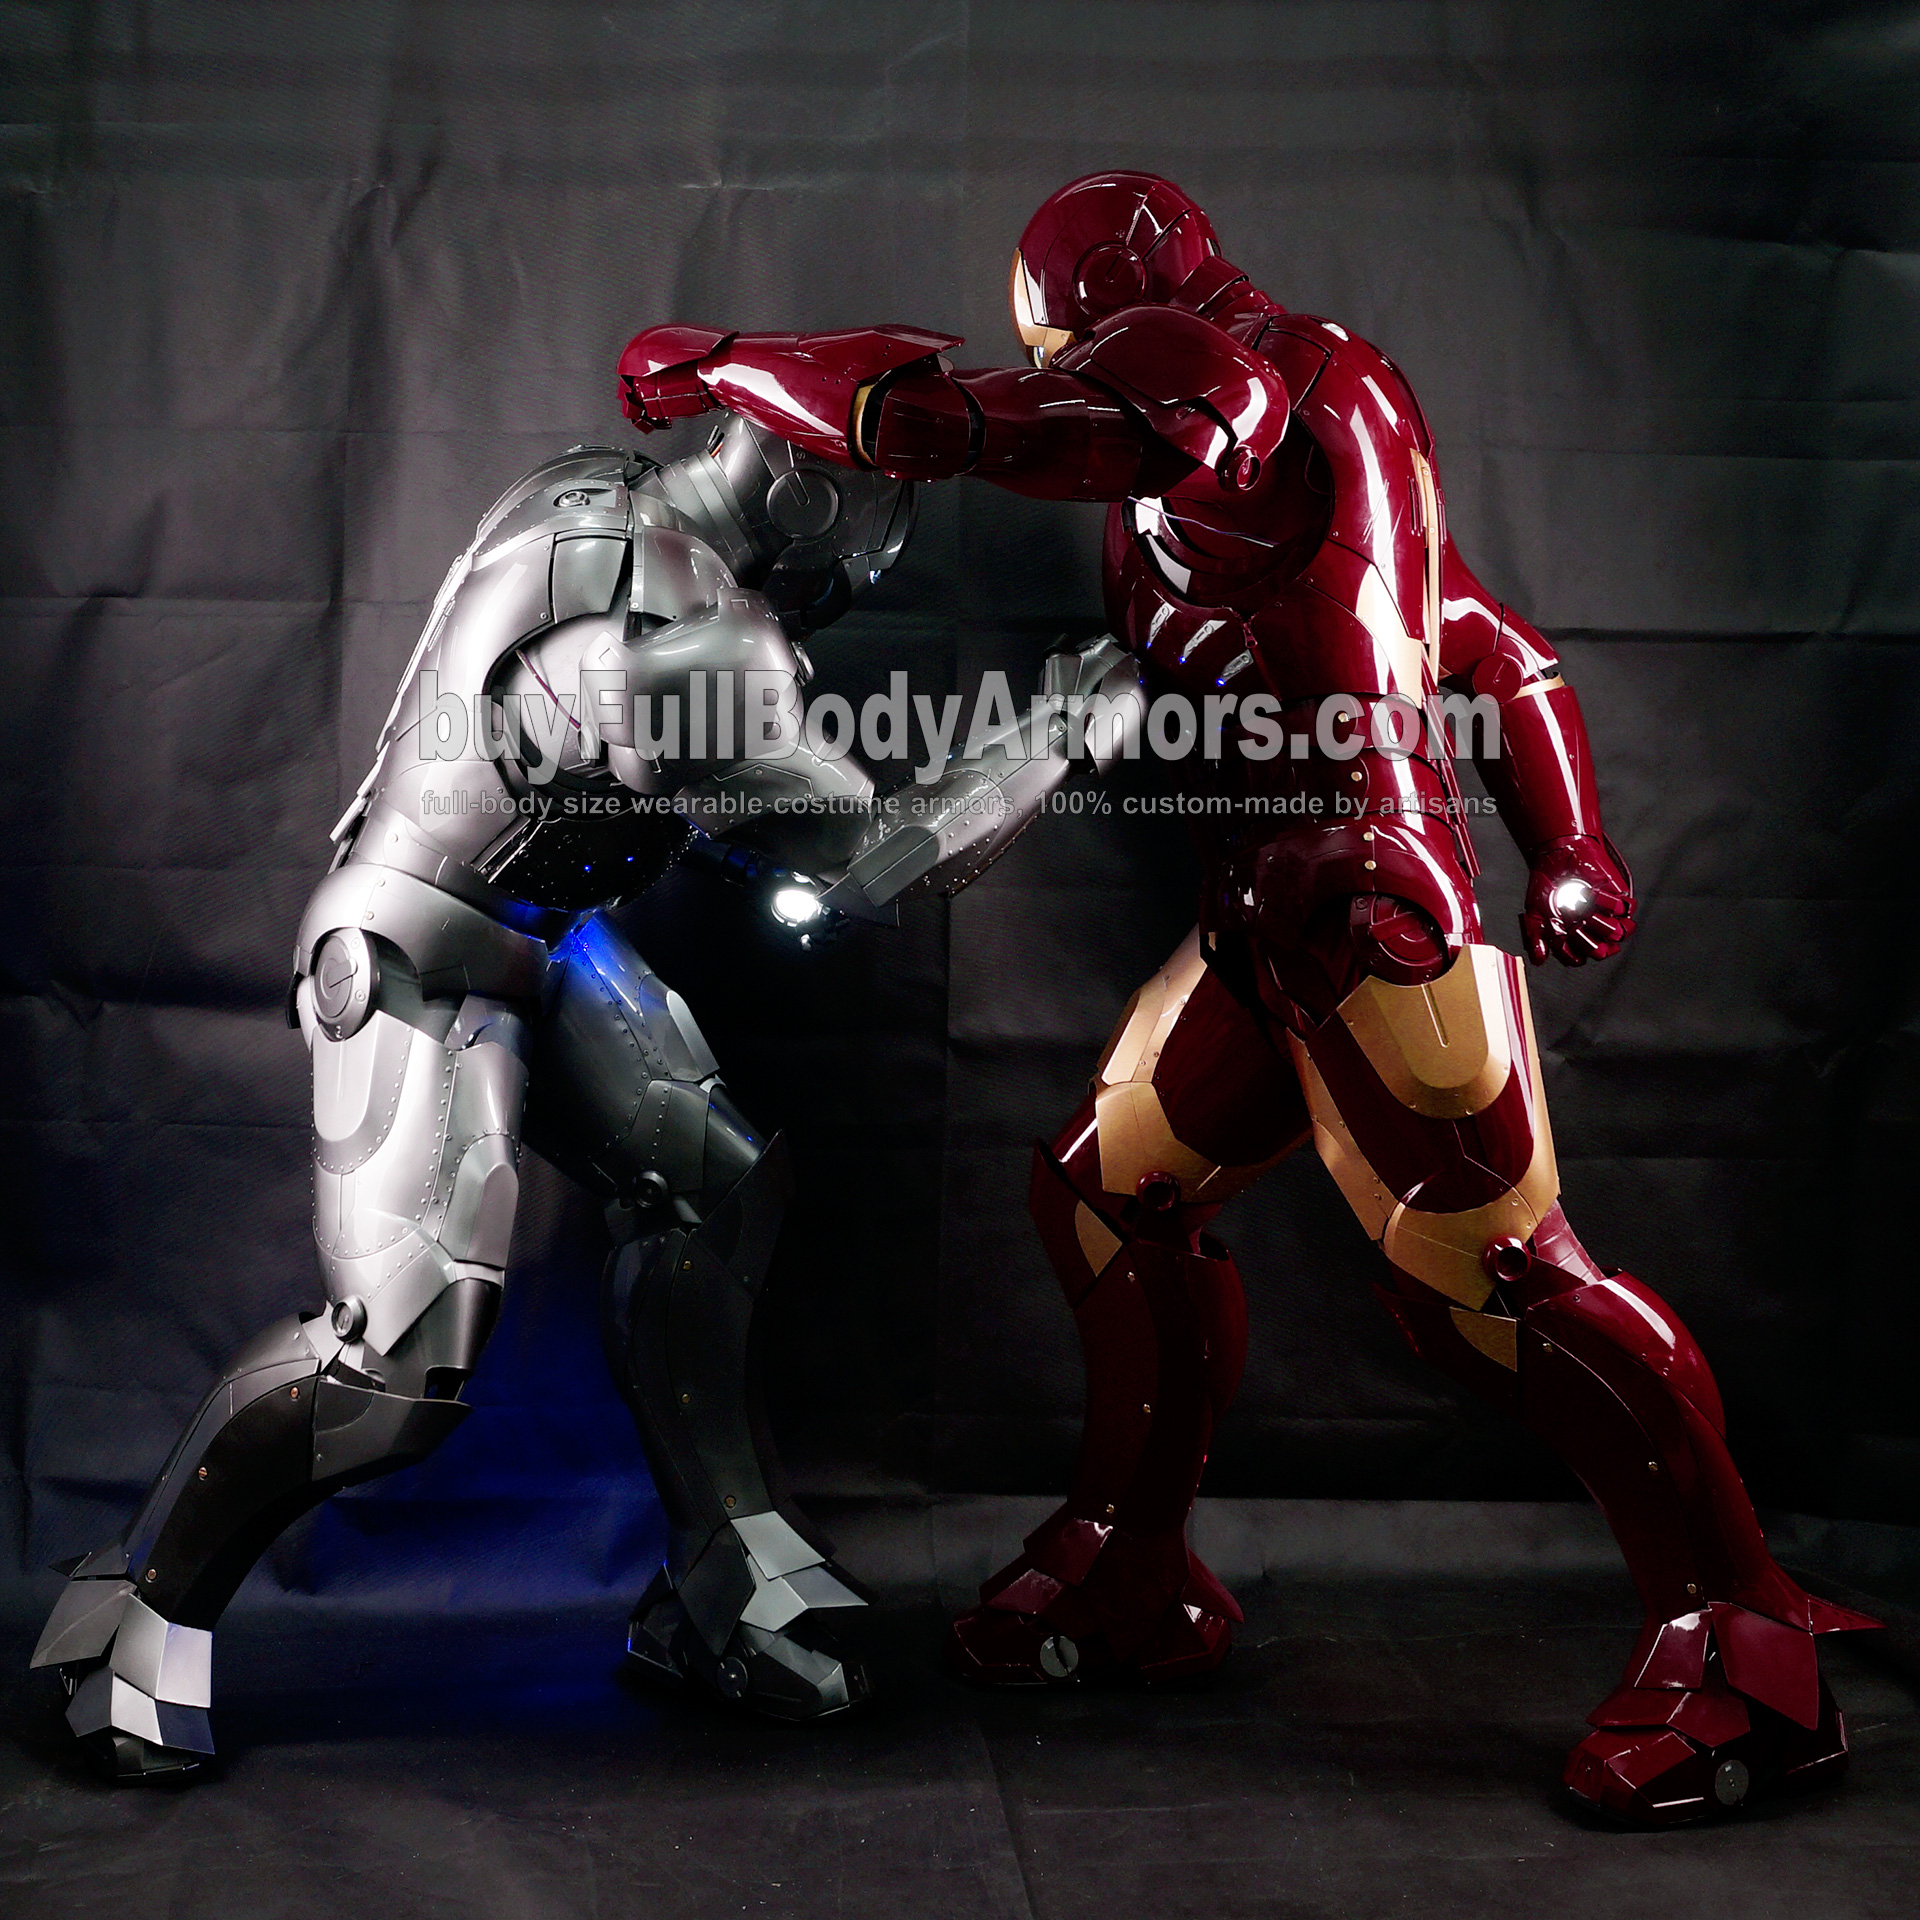 Real Iron Man Mark 3 III v Mark 2 II Cosplay 1